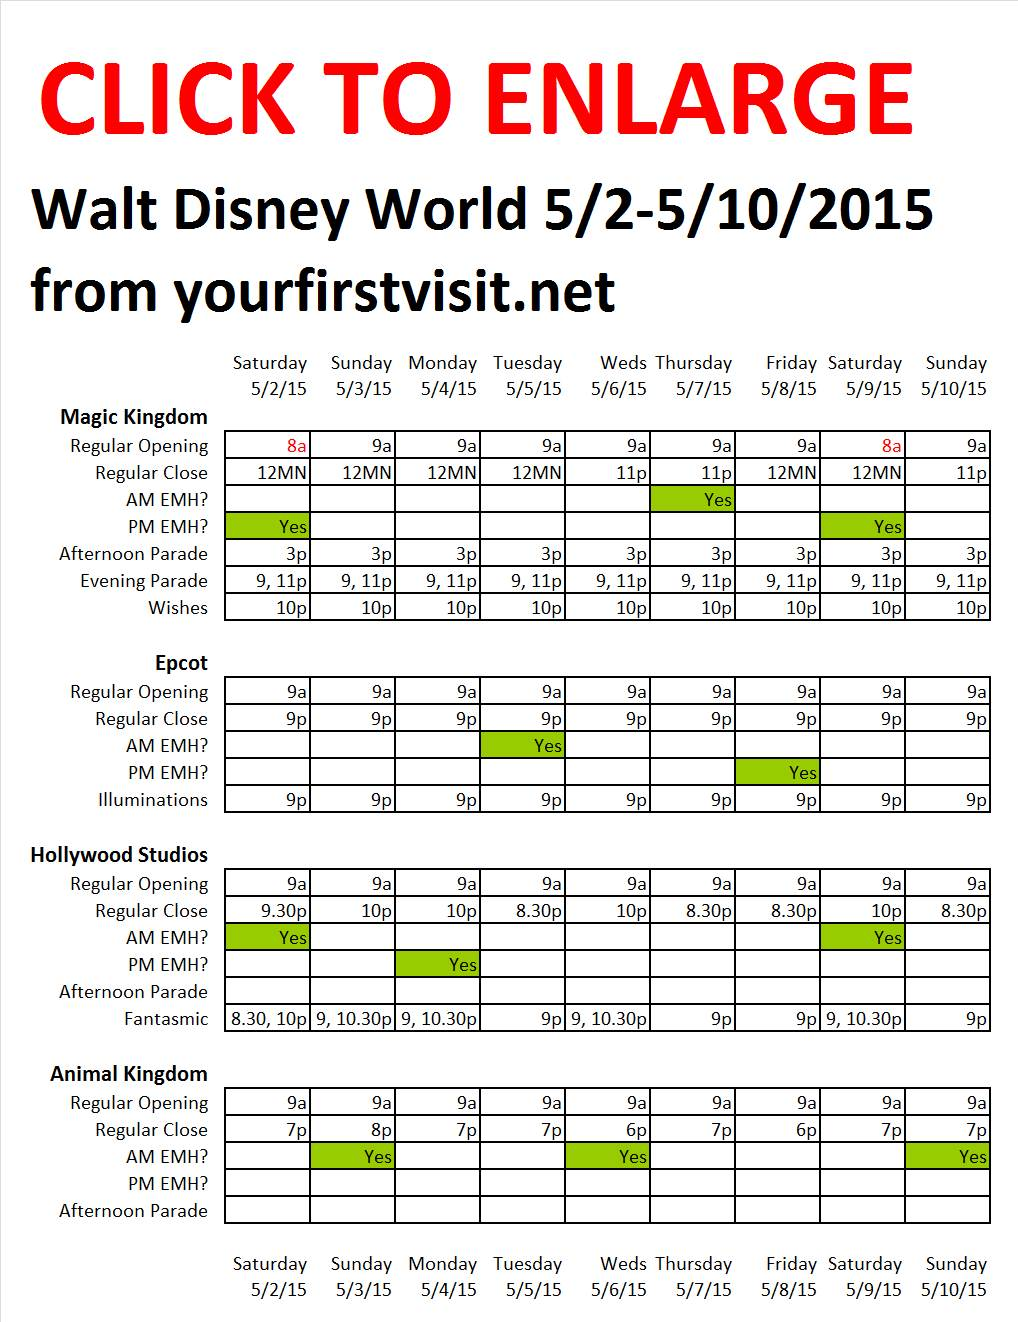 Disney World 5-2 to 5-10-2015 from yourfirstvisit.net